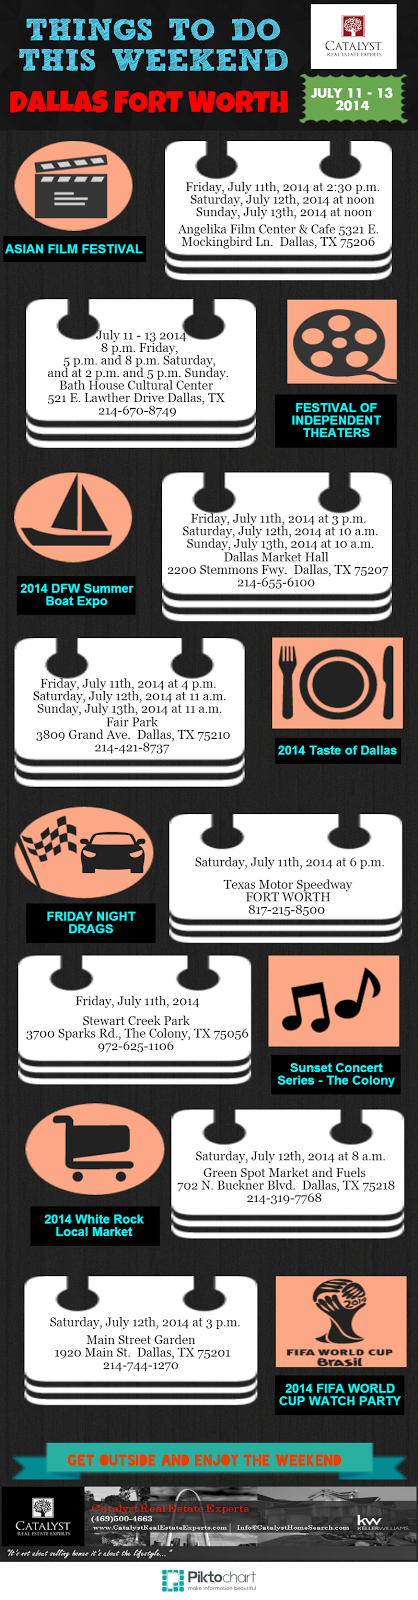 things to do this weekend in dallas fort worth, community